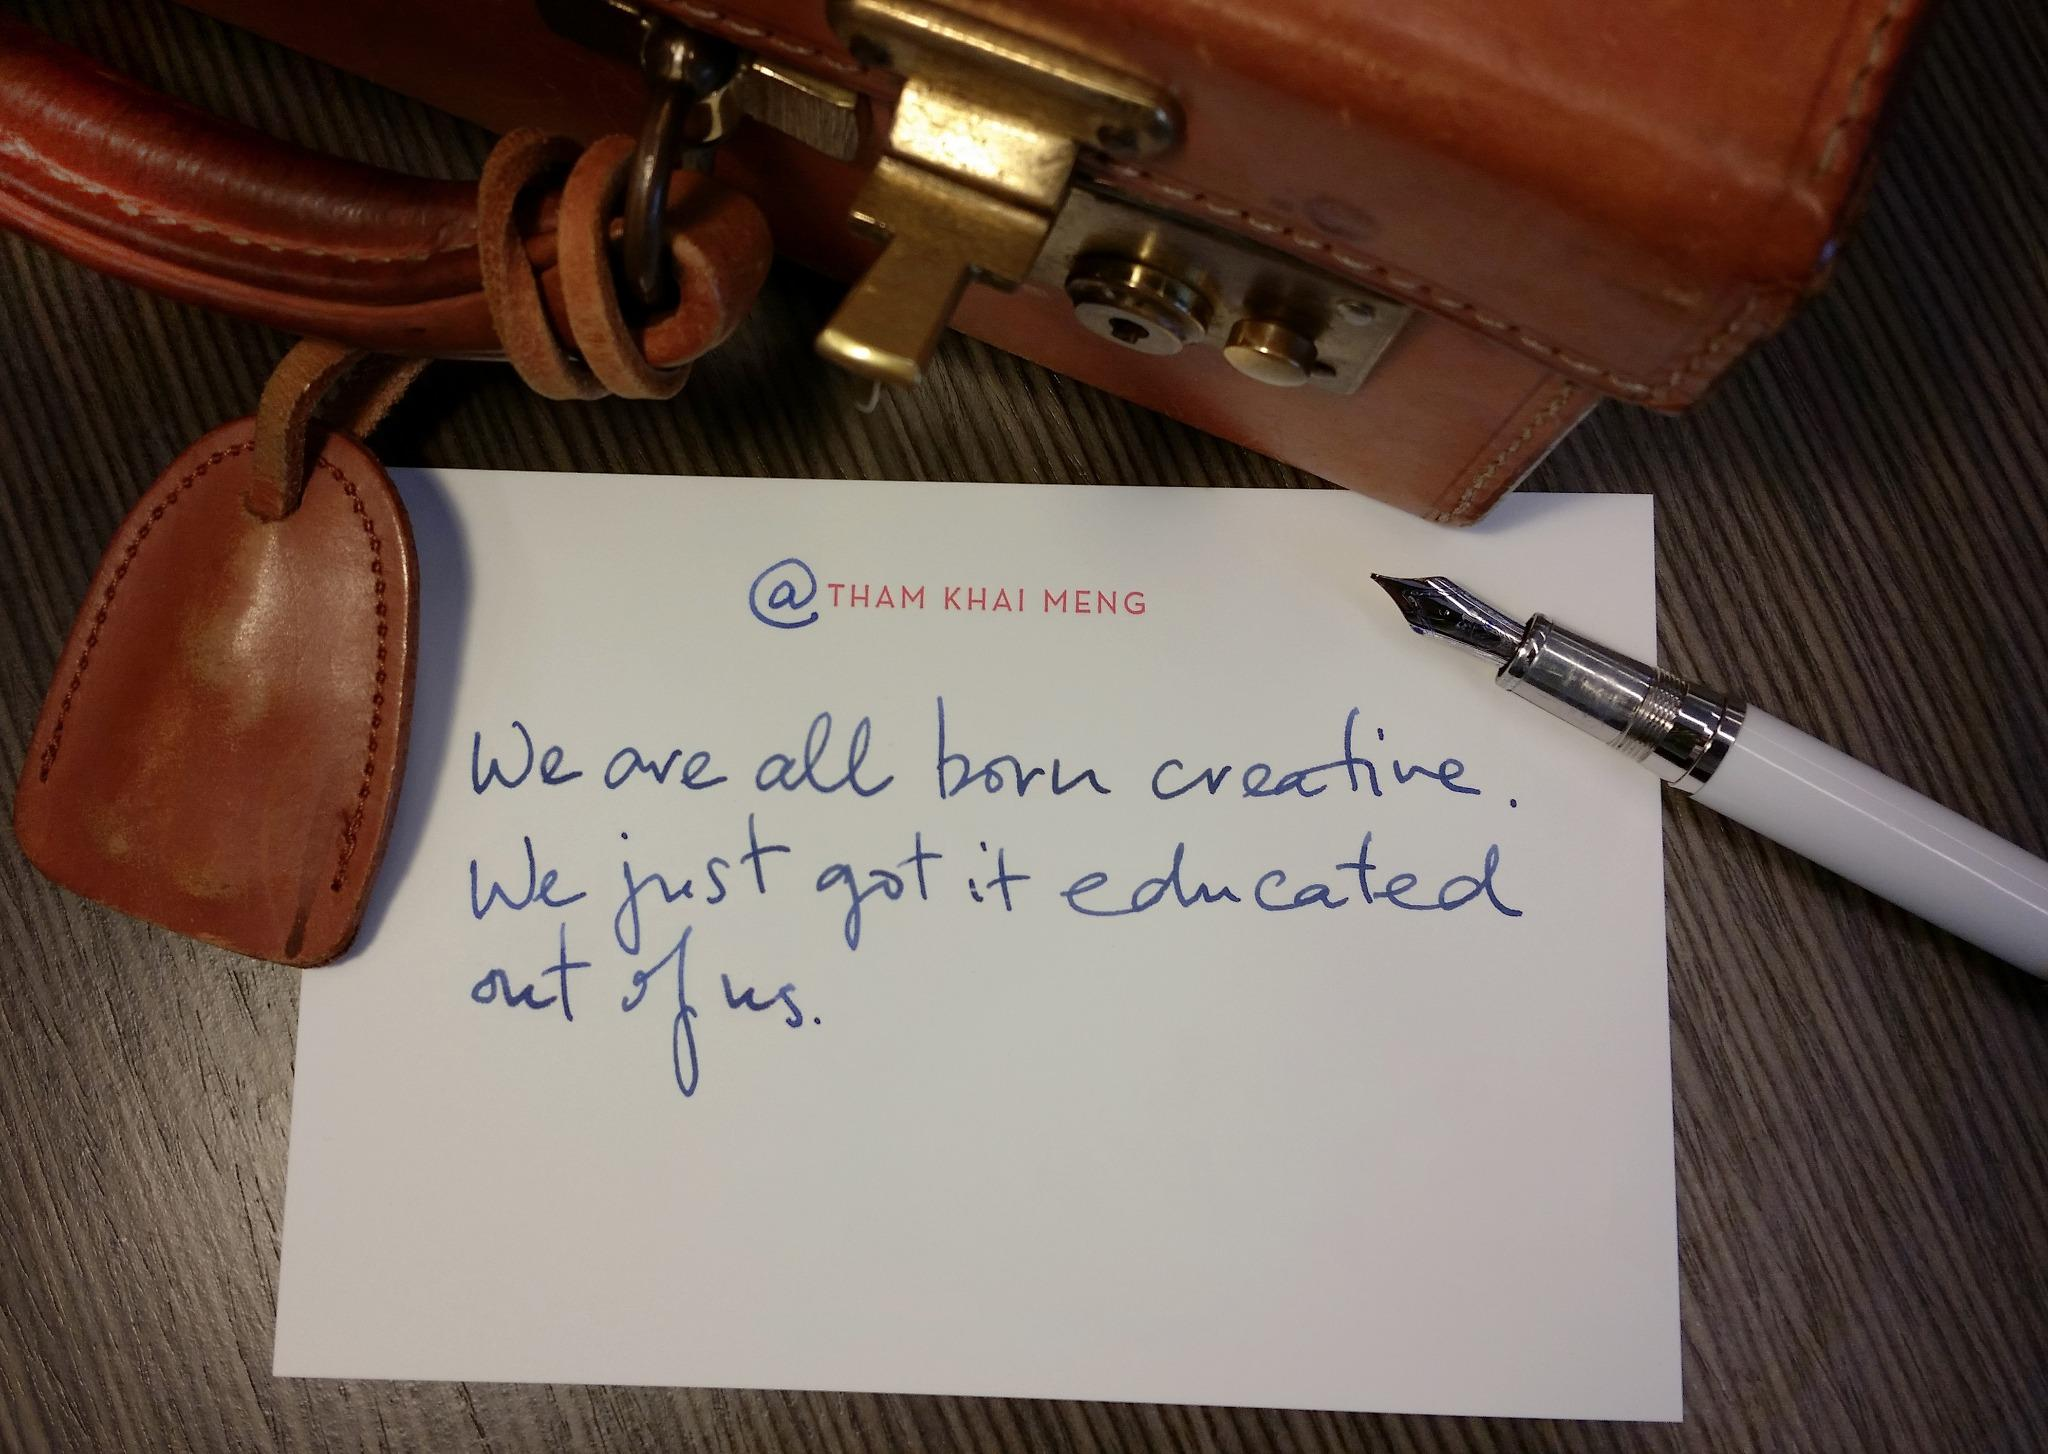 RT @ThamKhaiMeng: We are all born creative. We just got it educated out of us. http://t.co/RlNyVLUS3c